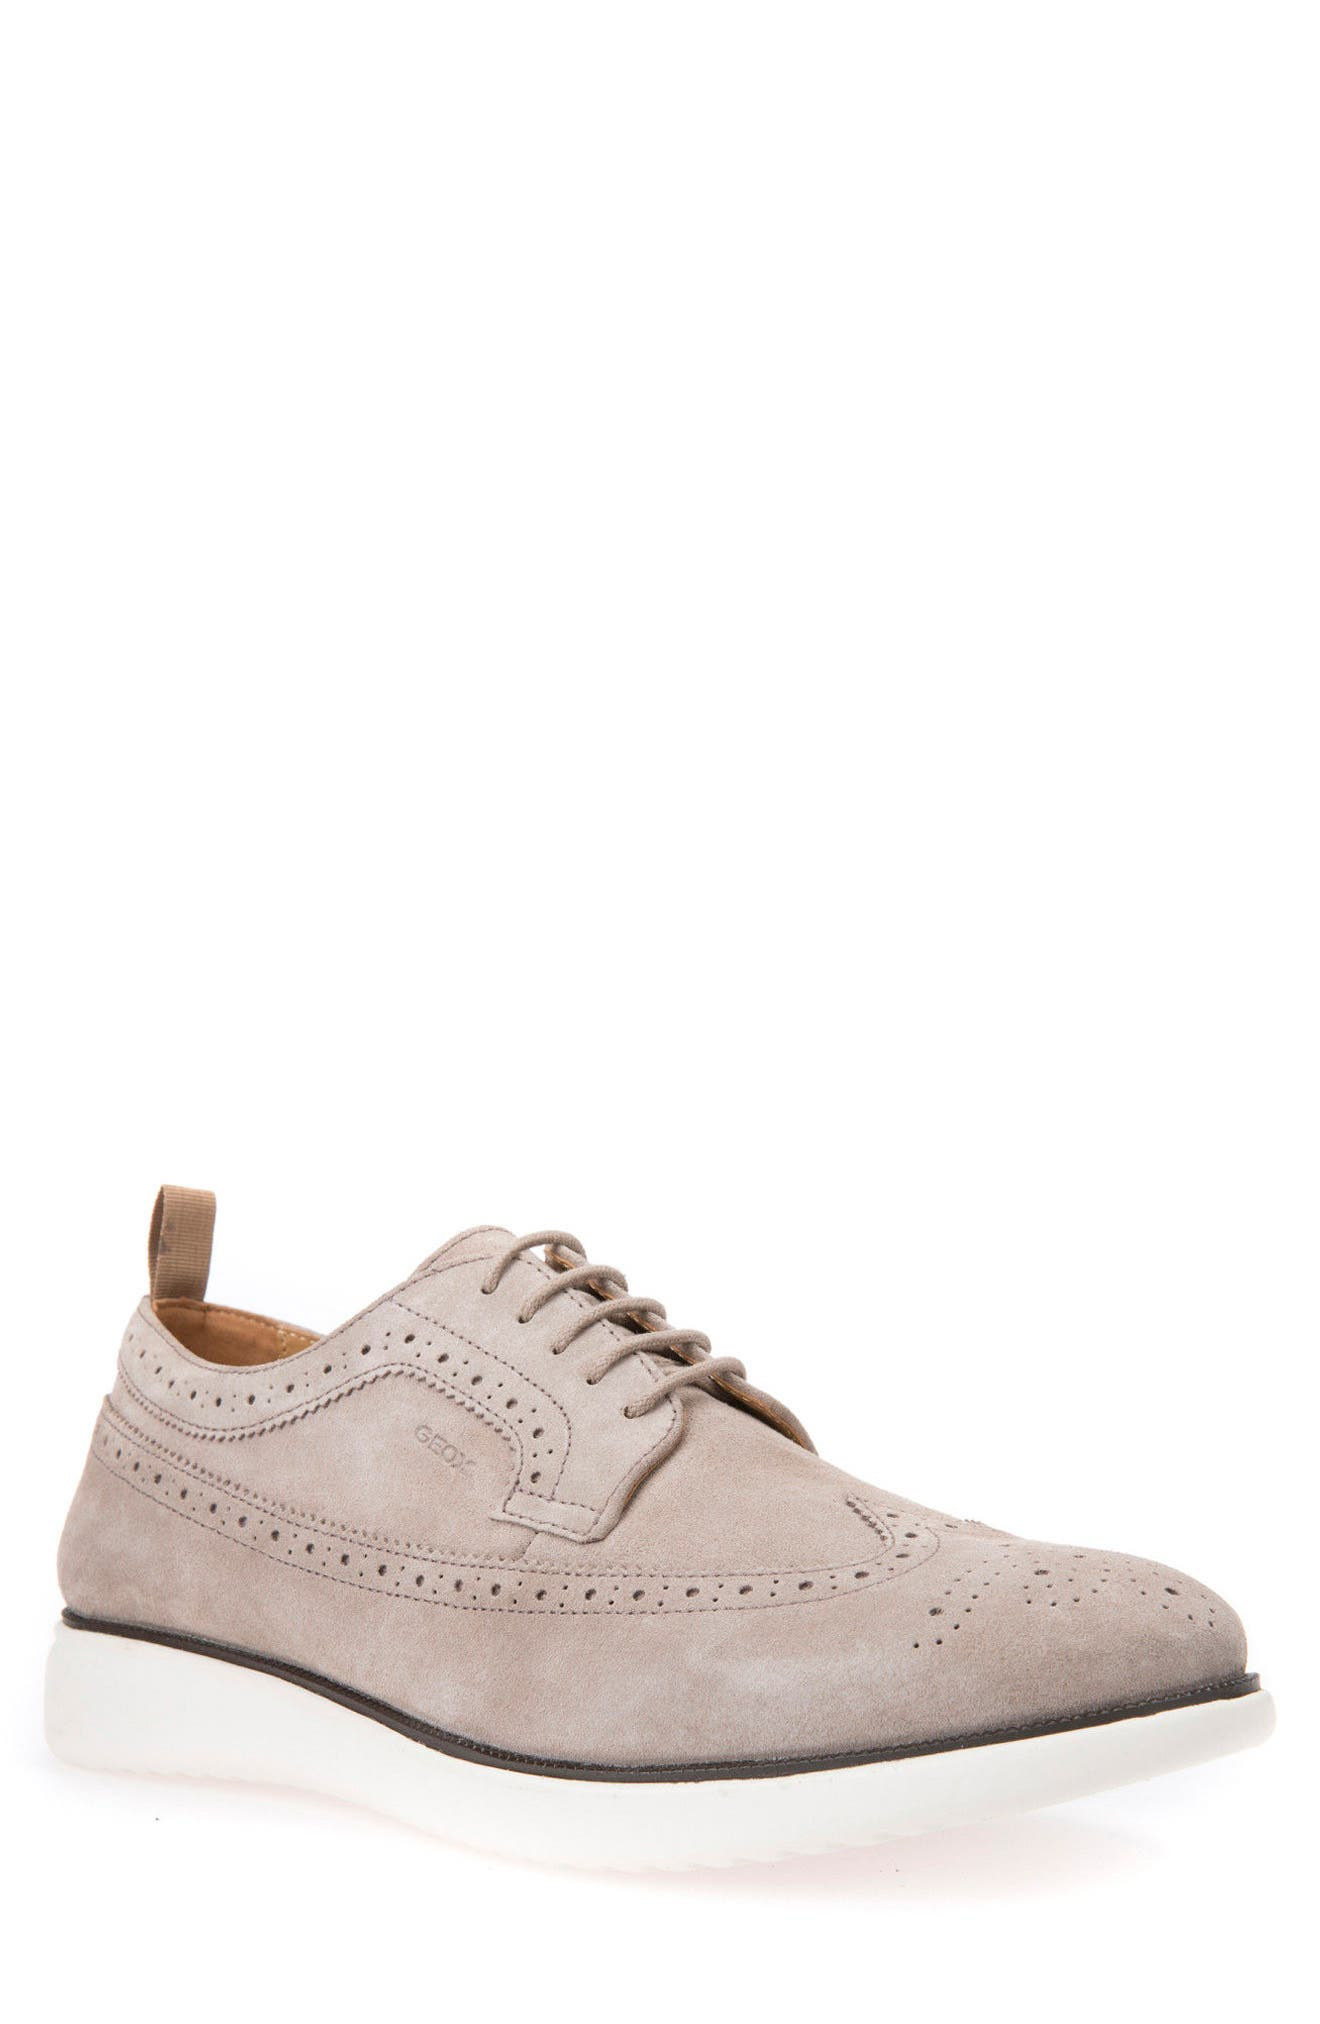 Winfred 2 Wingtip,                             Main thumbnail 1, color,                             Taupe Suede